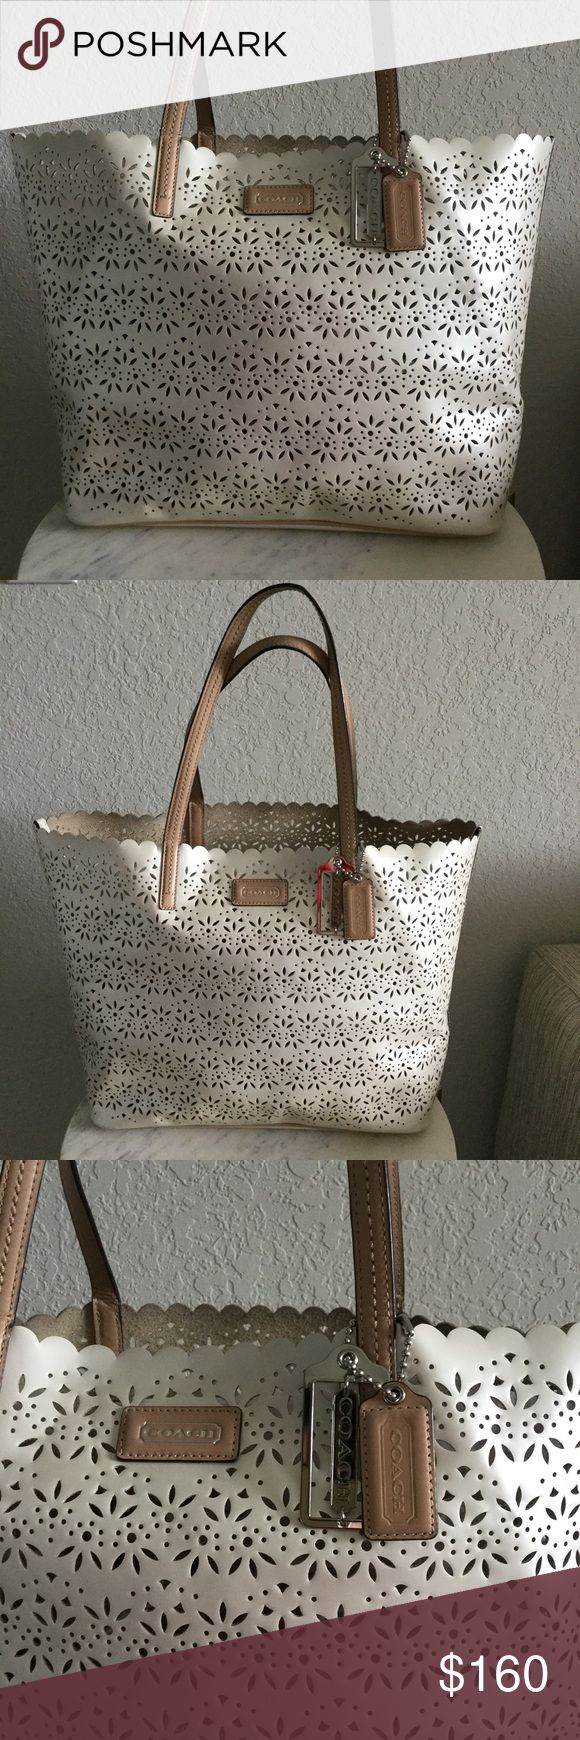 """Coach Laser Cut Floral Gold Brown Beige Tote Excellent condition. Some minor scuffing on the handles. See picture. Some minor staining on the inside bottom. Overall excellent condition. Measures: 19"""" (L) x 4"""" (W) x 12"""" (H) Strap drop: 8"""" Coach Bags Totes"""